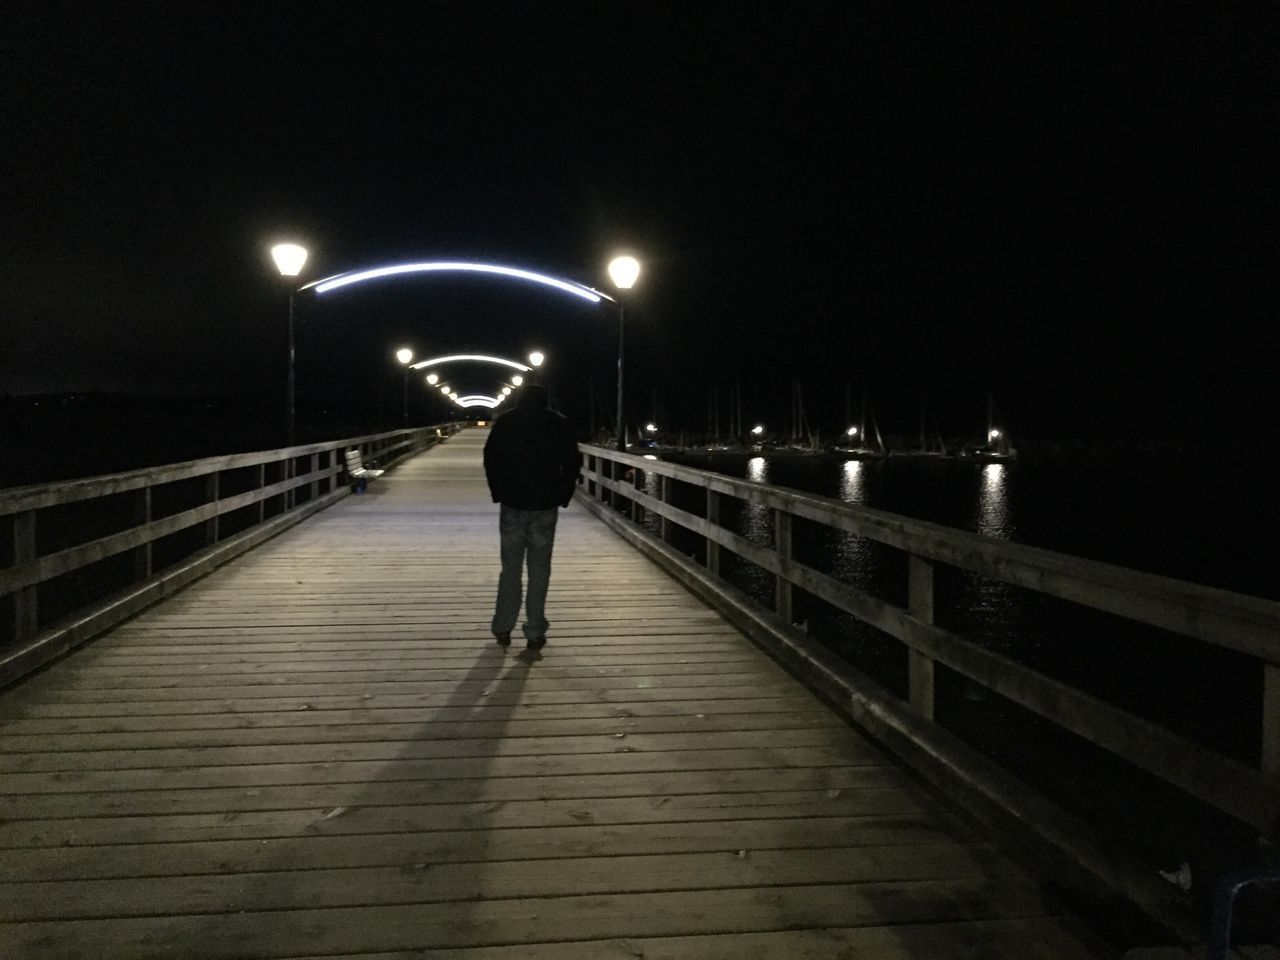 White rock pier at night Night Illuminated Bridge - Man Made Structure Street Light Full Length Lighting Equipment Railing The Way Forward One Person Walking Real People Transportation Rear View Men Outdoors People